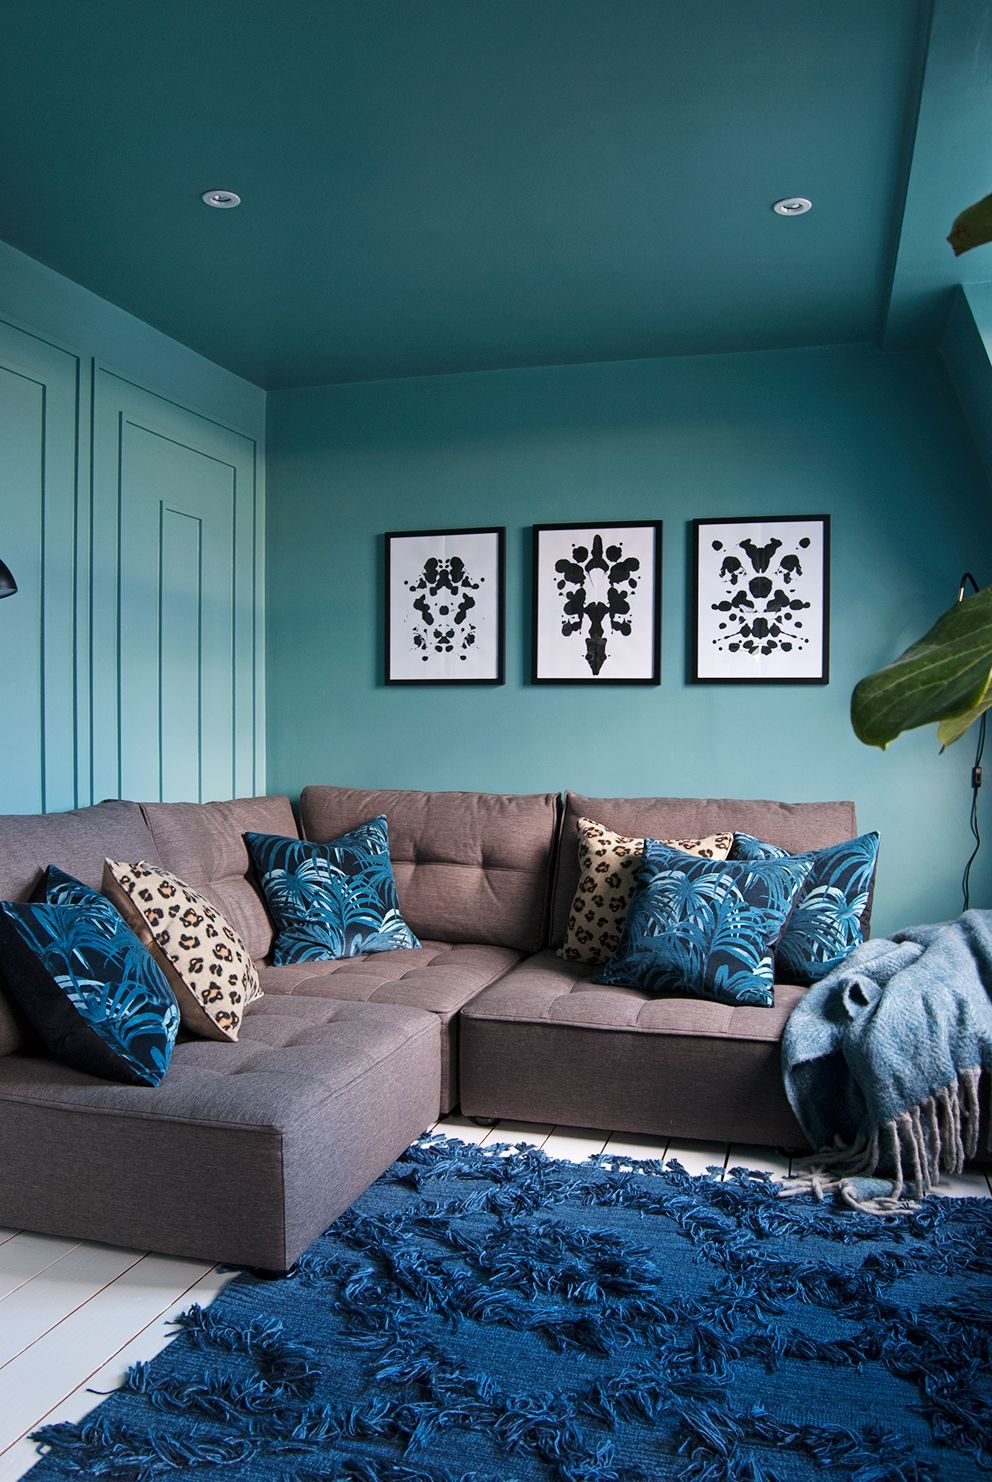 10+ Best Teal And Beige Living Room